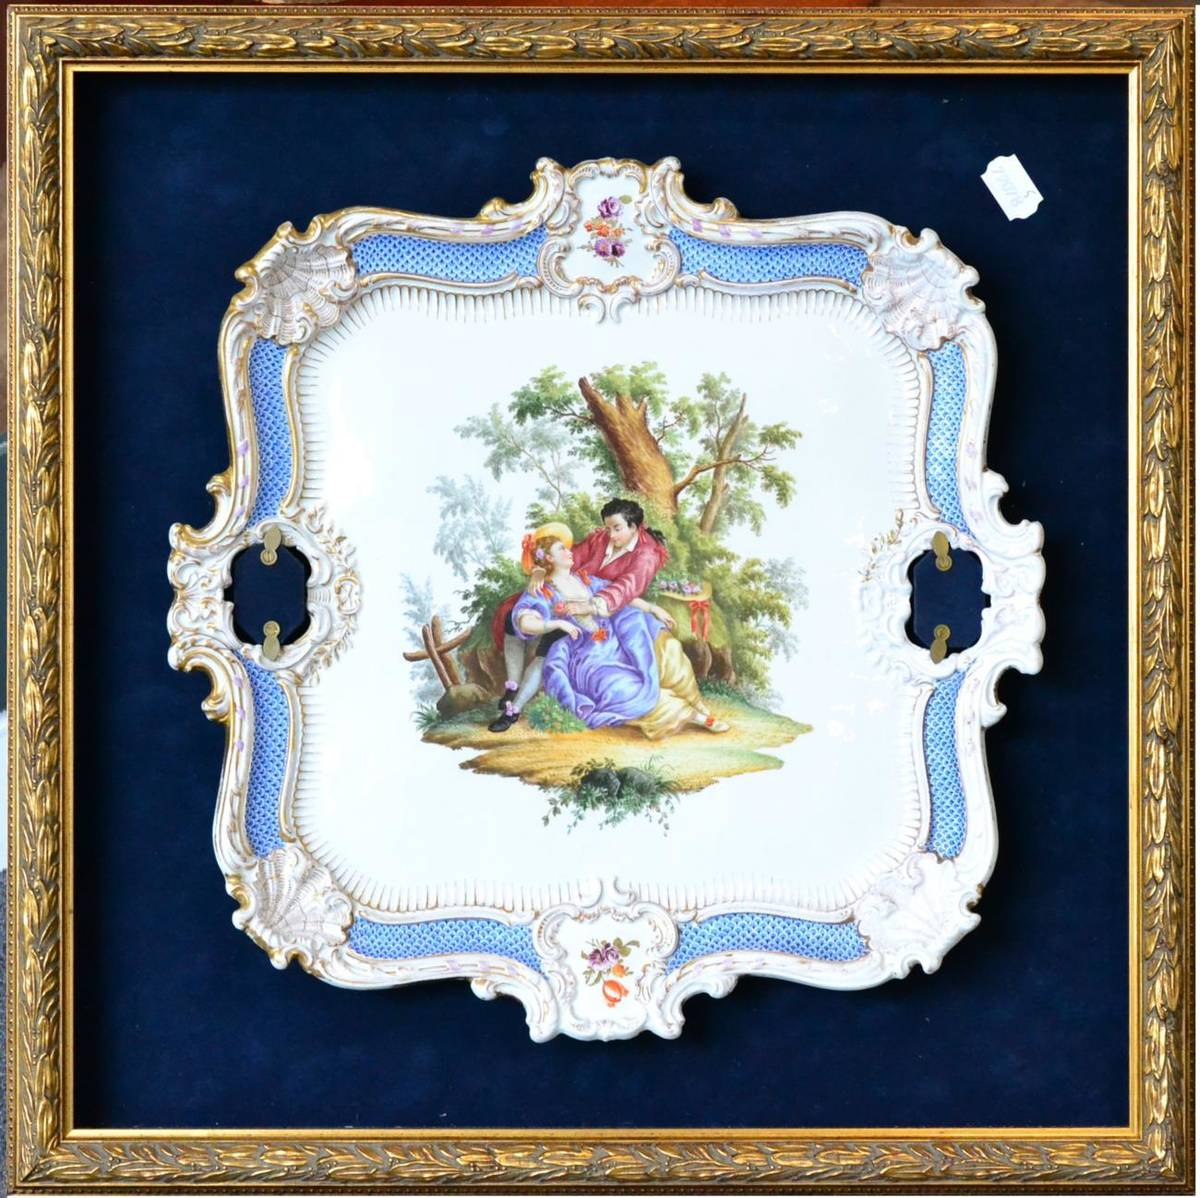 Lot 20 - A Meissen Porcelain Twin-Handled Tray, mid 19th century, of shell and scrolled moulded form,...